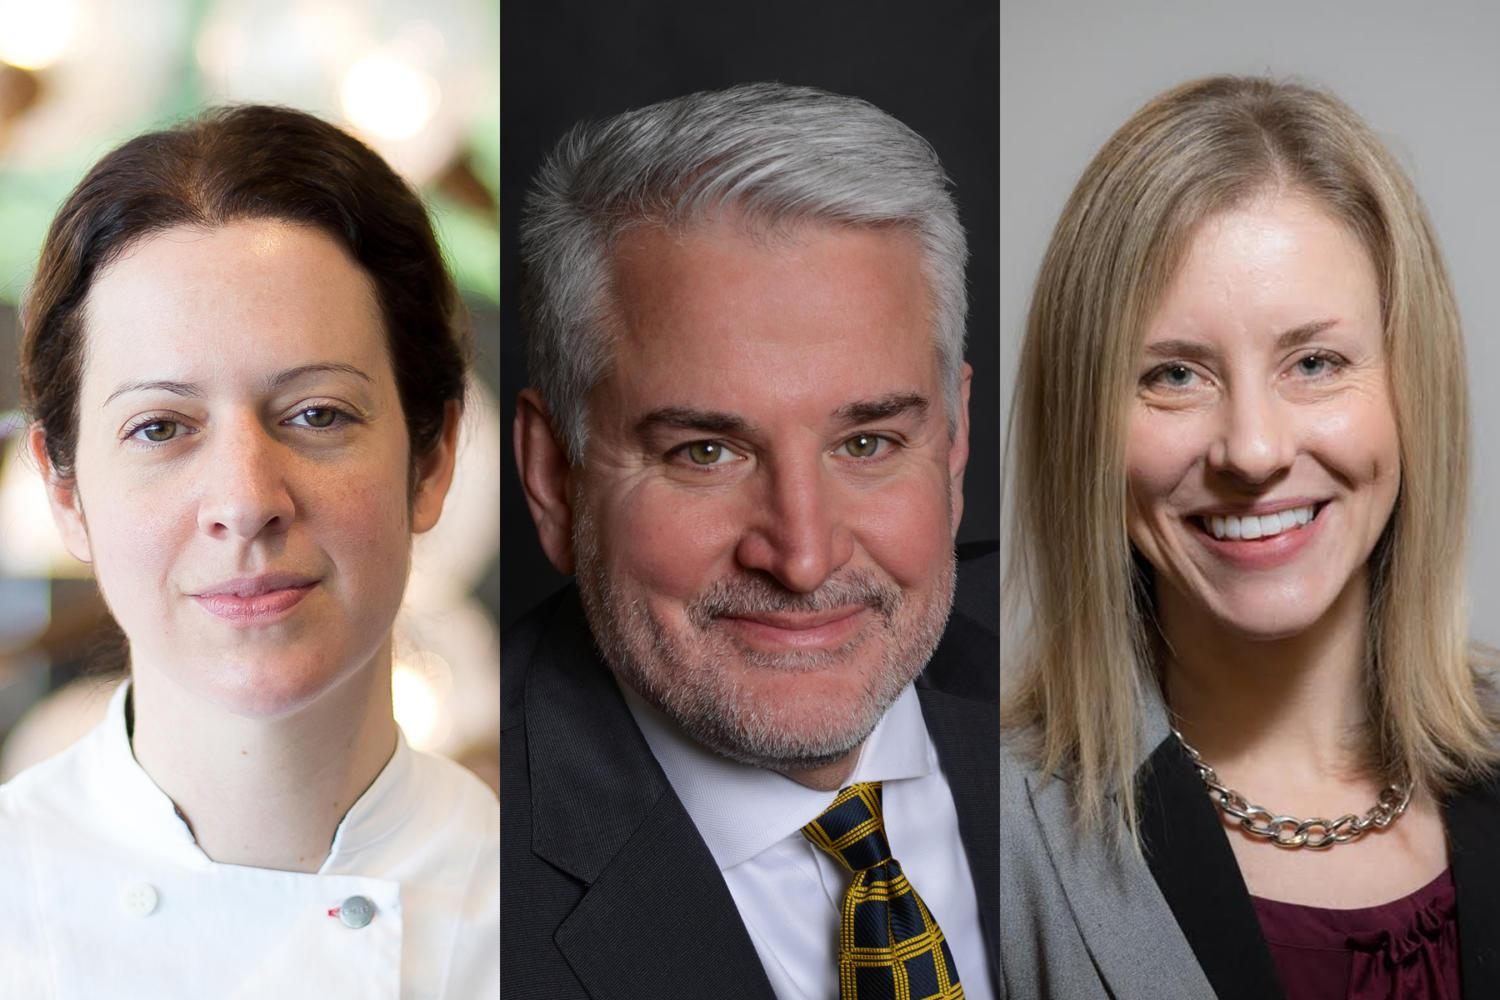 Sonja Finn, Marty Healey and Erika Strassburger (from left) have all announced campaigns for the District 8 City Council seat.